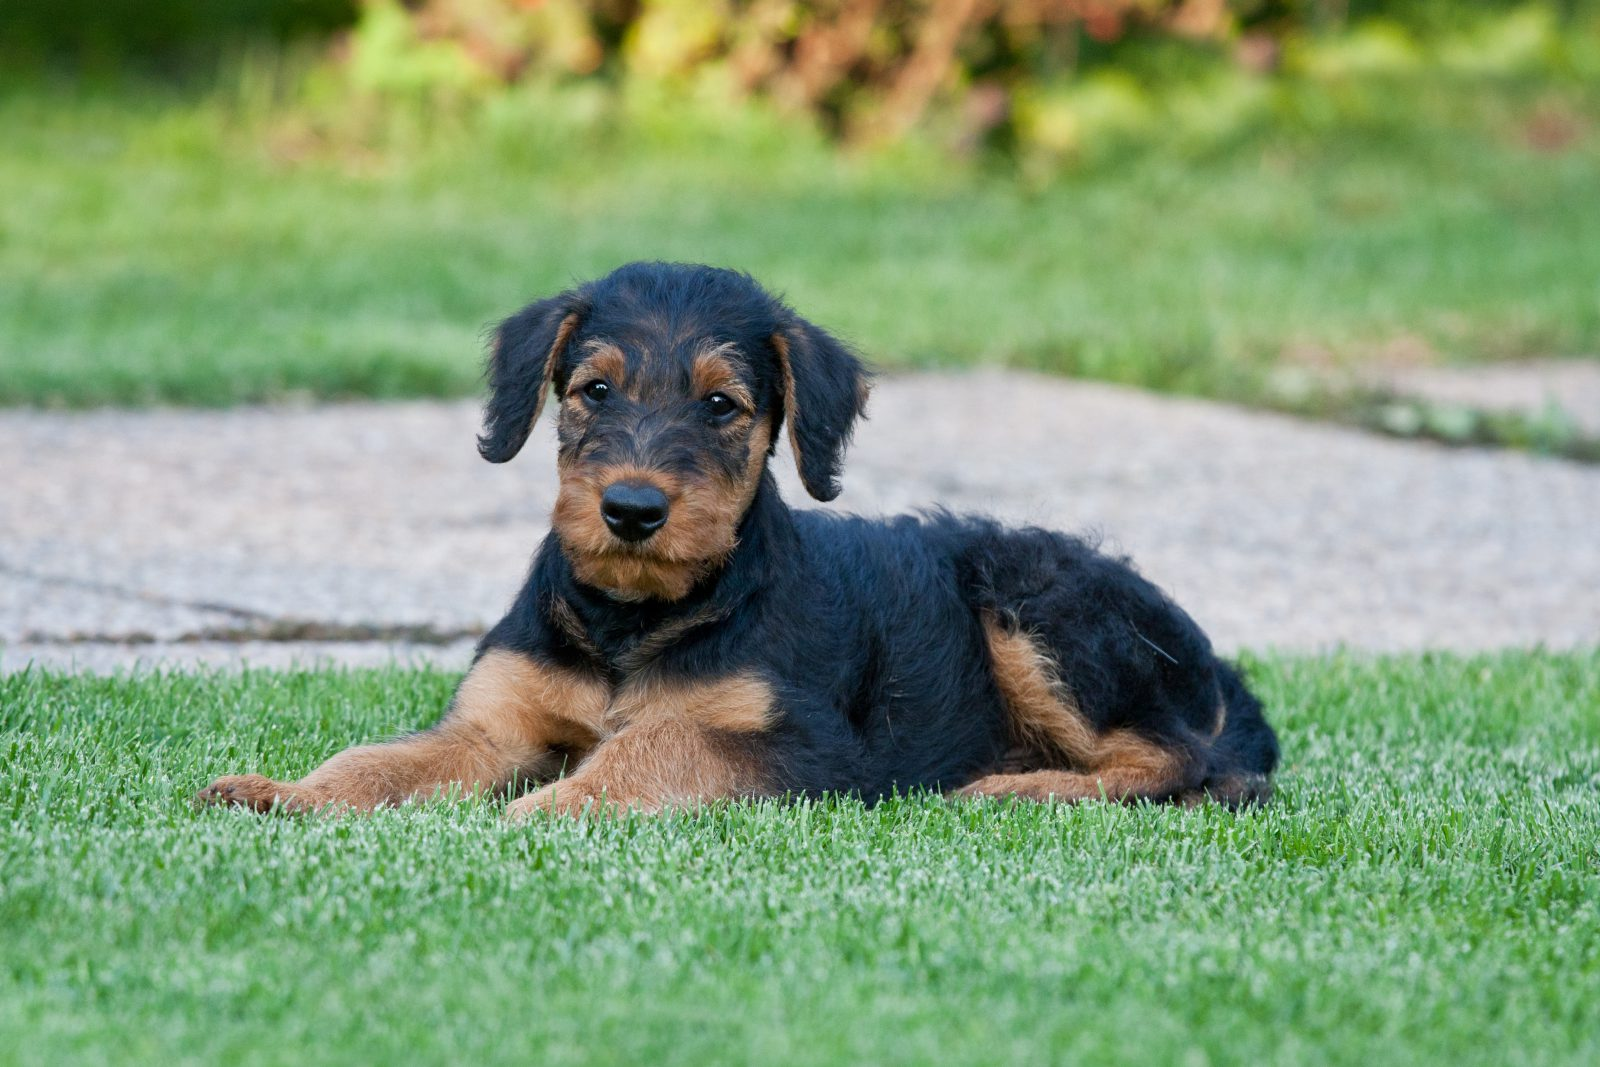 cao-airedale-terrier-saude